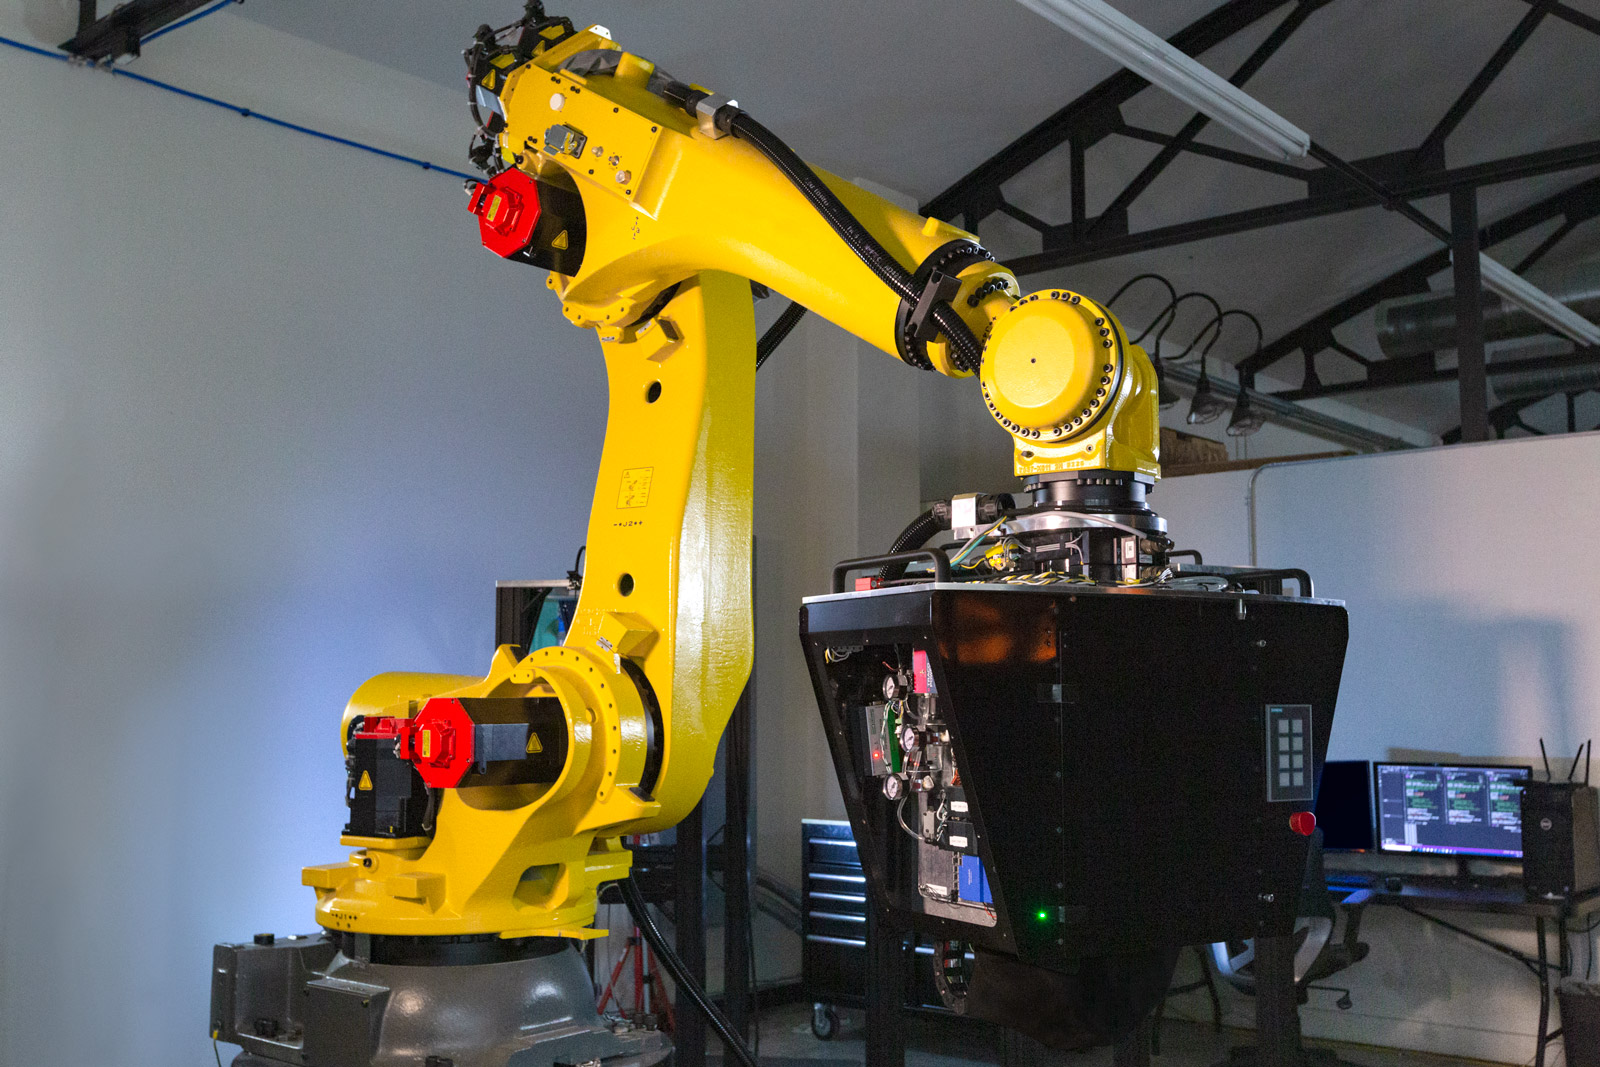 Fanuc robot mounted with CF3D print head